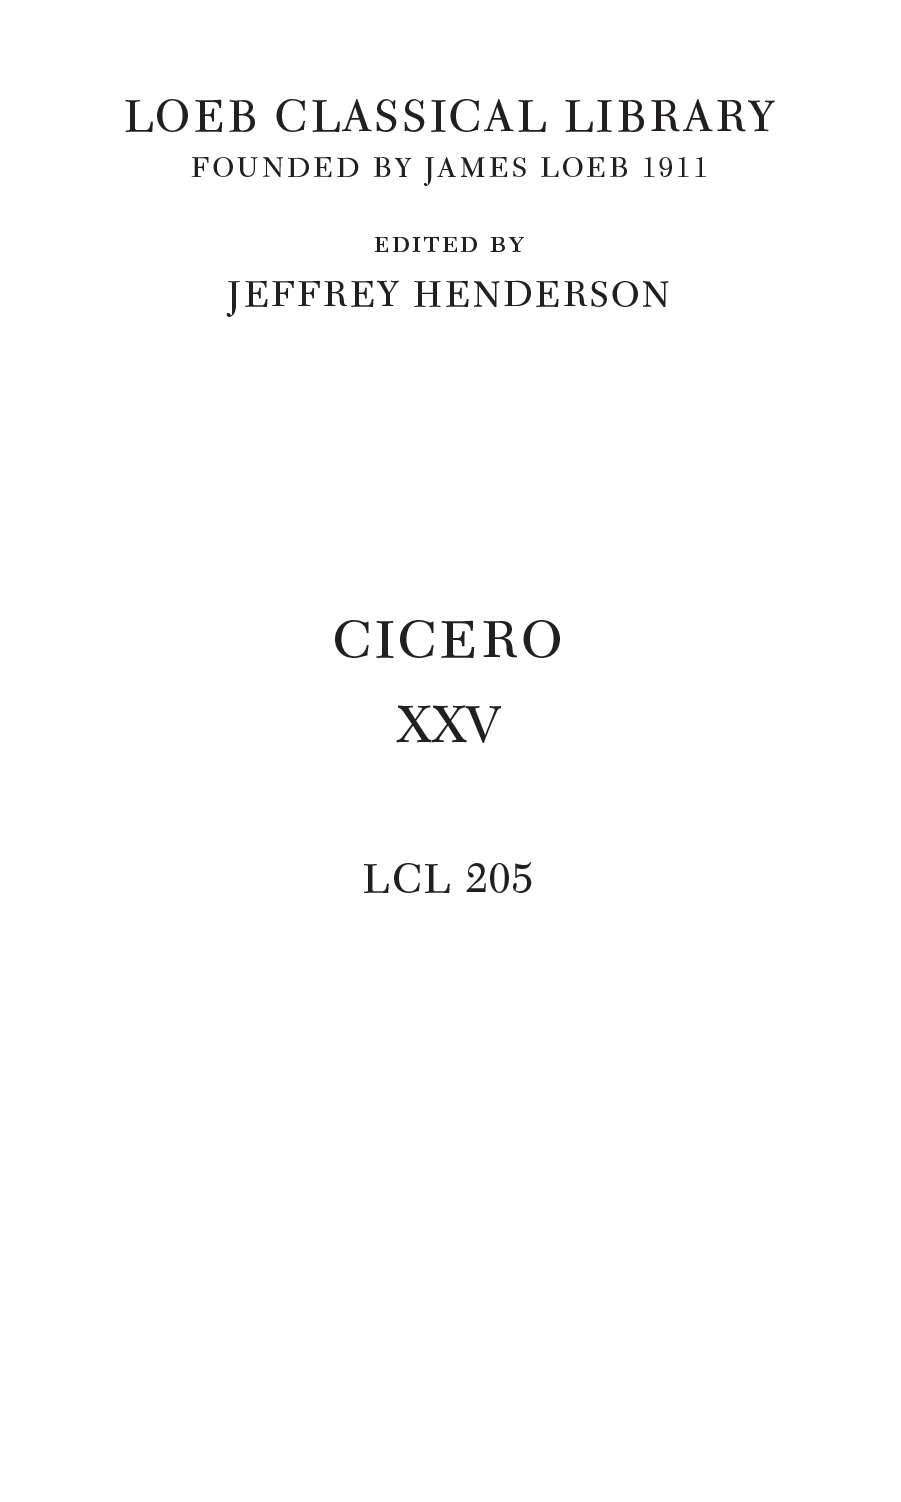 Loeb Classical Library founded by james loeb 1911 edited by Jeffrey Henderson Cicero XXV LCL 205